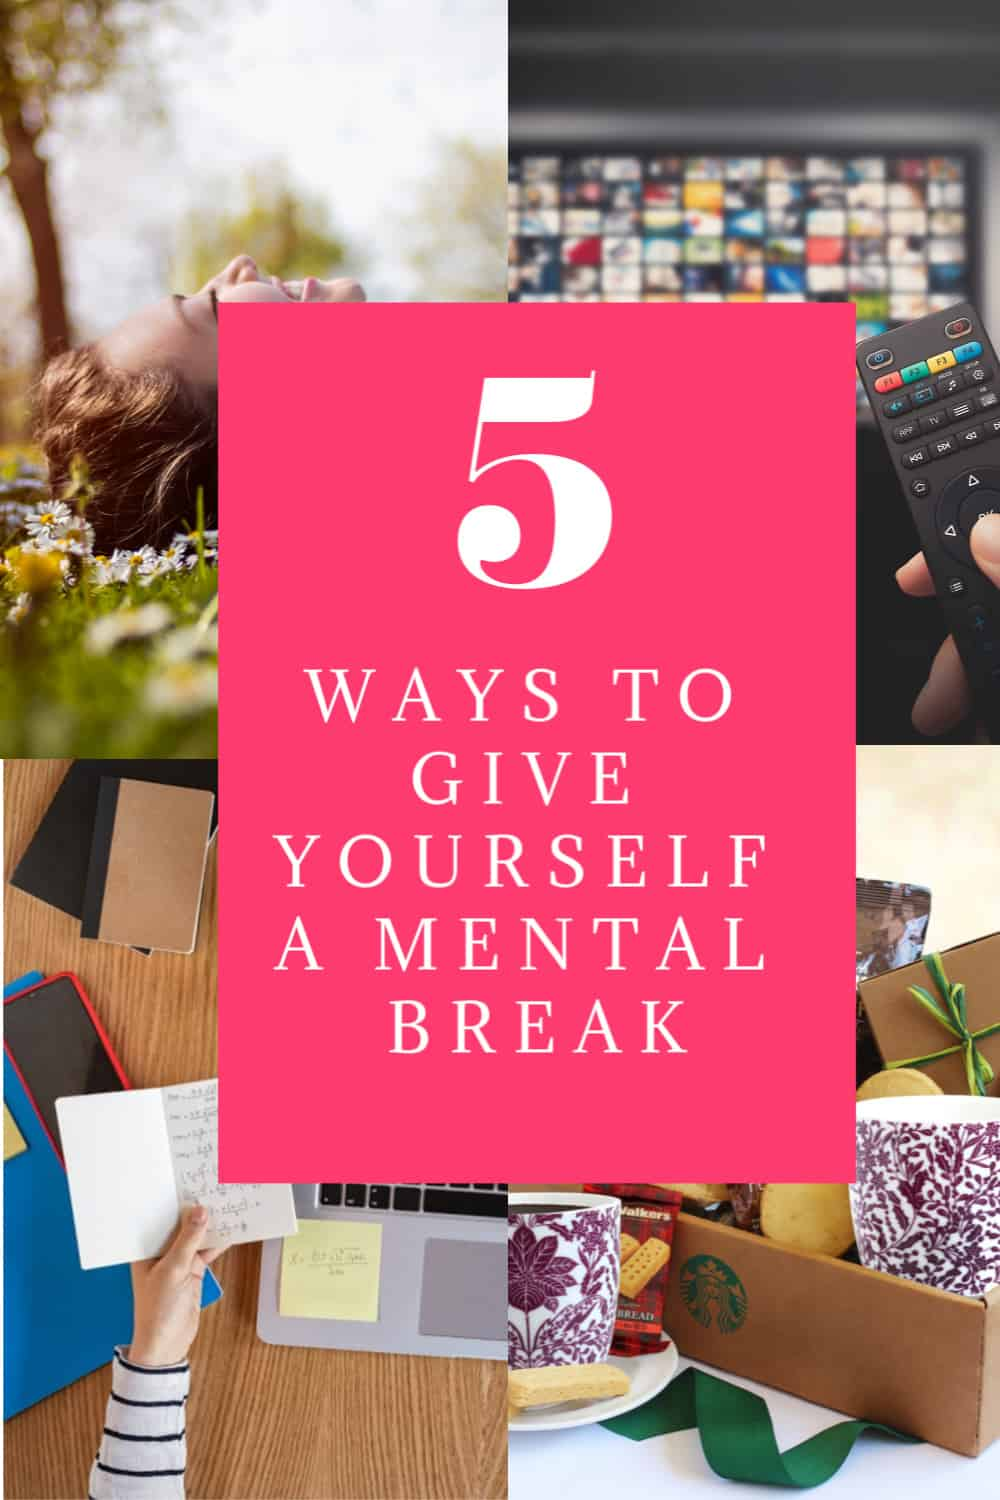 Right now is the perfect time to give yourself a mental break...before your brain decides to just take one on its own. These tips helped me, so give them a try!